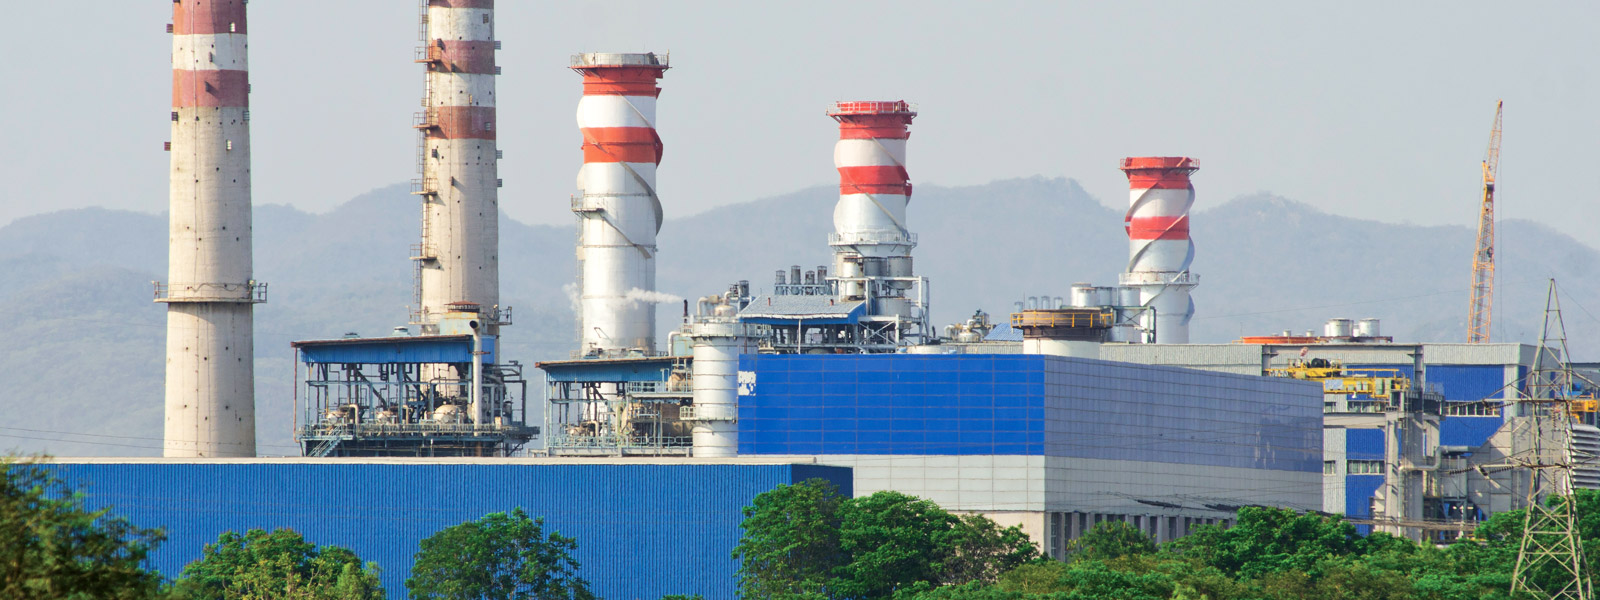 Power Plant | Gas Turbine | Steam Turbine | Boiler | HRSG | Condenser